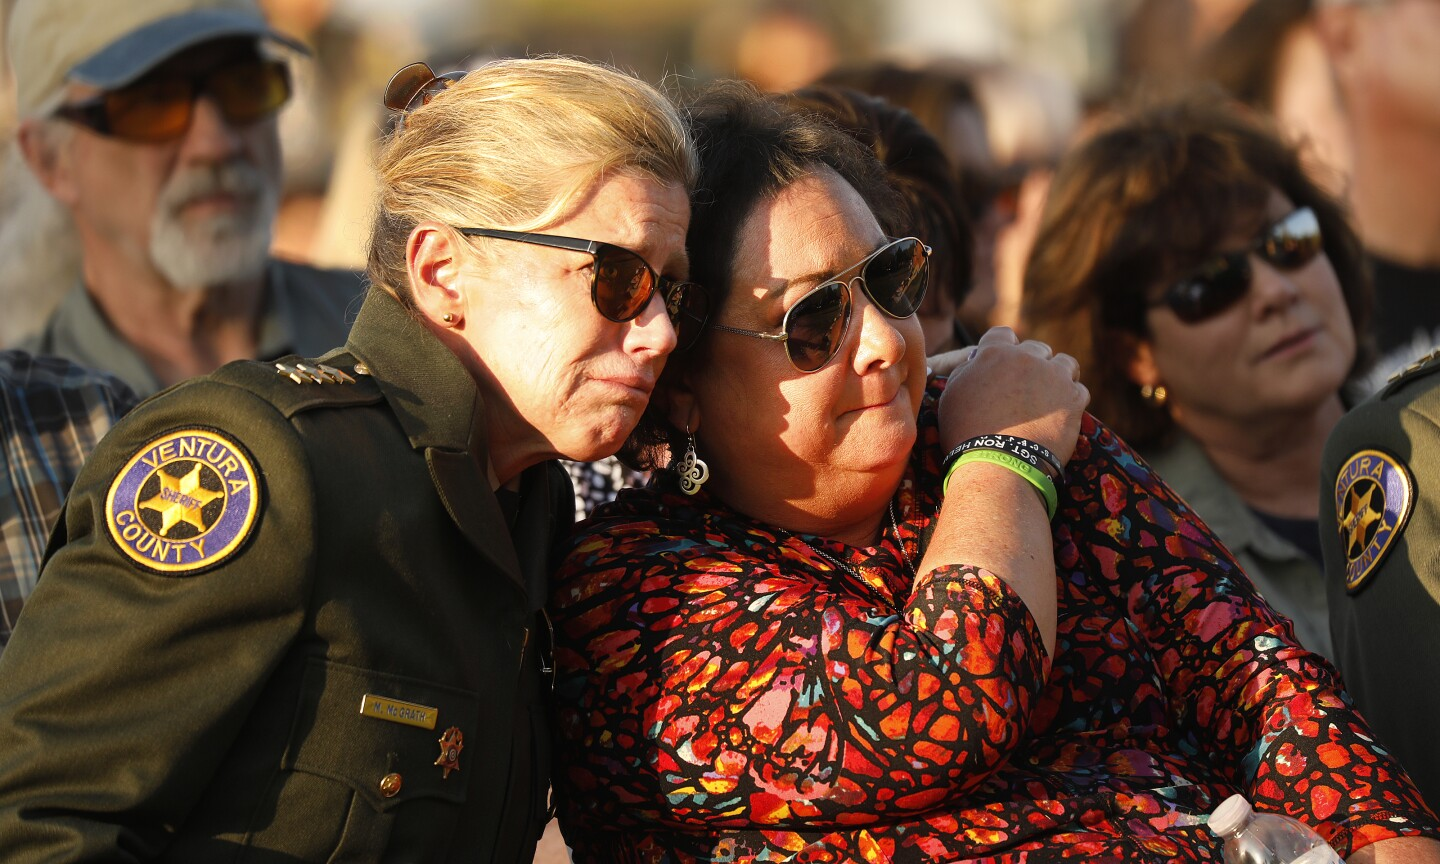 """THOUSAND OAKS, CA - NOVEMBER 7, 2019 Ventura County Undersheriff Monica McGrath, left, comforts Karen Helus wife of Ventura County Sheriff Sgt Ron Helus who was killed in the Borderline mass shooting during the dedication services at the Healing Garden constructed at Conejo Creek North Park in Thousand Oaks to remember the 12 lives taken and the 248 that survived the Borderline Bar and Grill mass shooting on the one-year anniversary of the mass shooting. Brandon was best friends with victim Cody Coffman and """"like a brother since they were 7 years old."""" (Al Seib / Los Angeles Times)"""